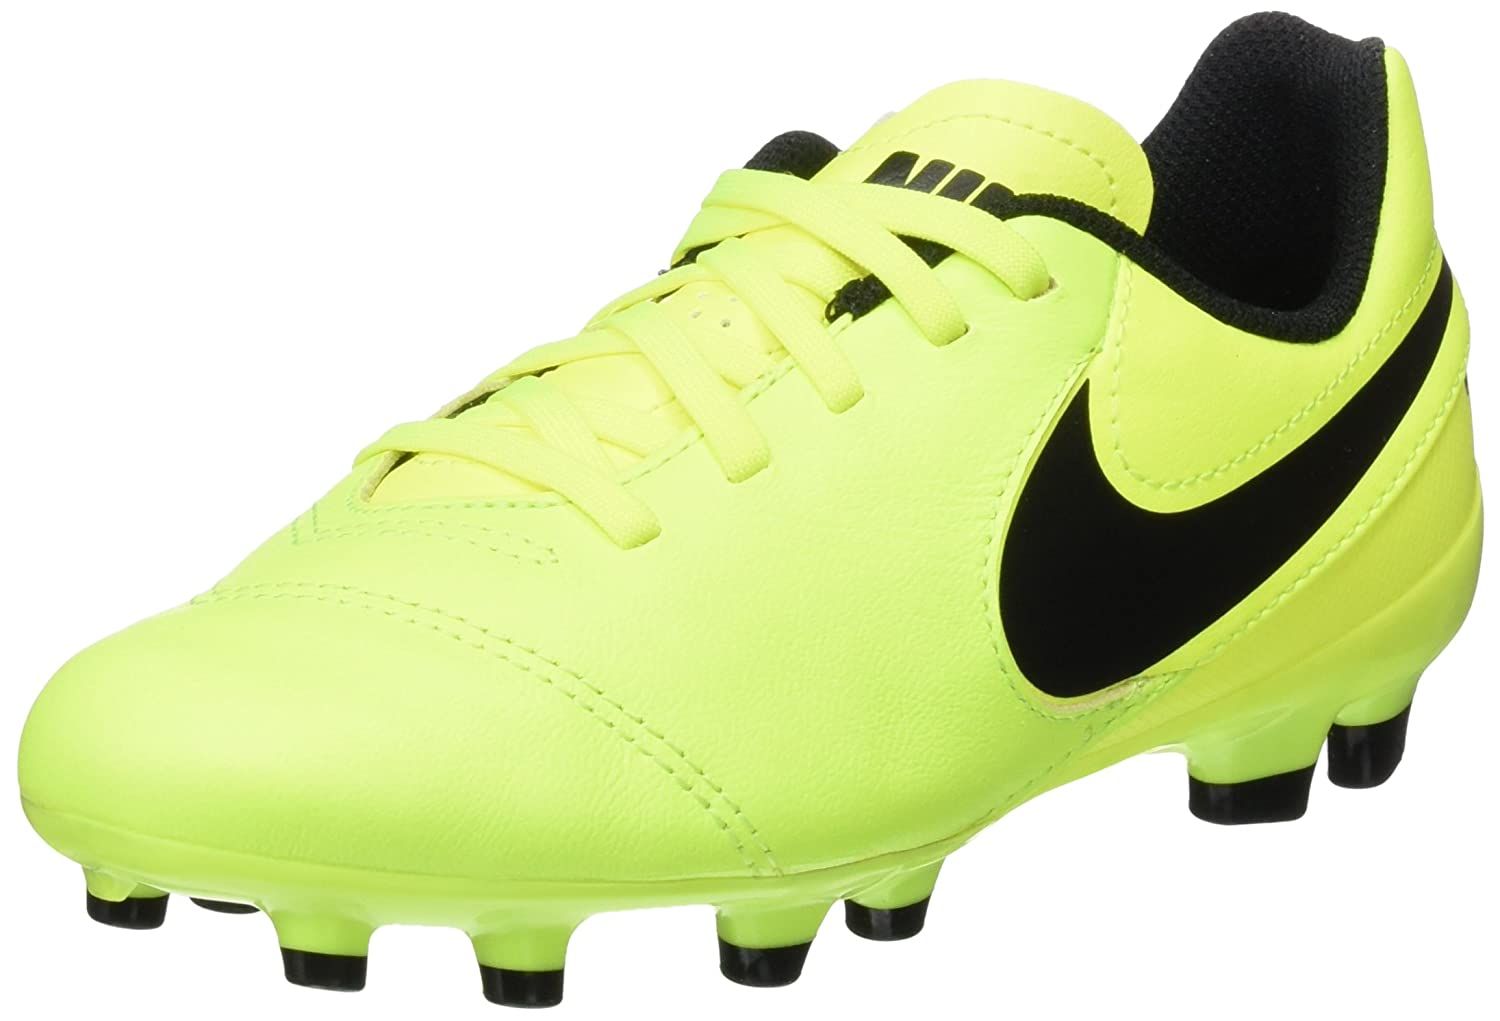 b12b436f205 Nike Kids JR Tiempo Legend VI Fg Volt Black Volt Soccer Cleat 5 Kids US   Amazon.ca  Shoes   Handbags